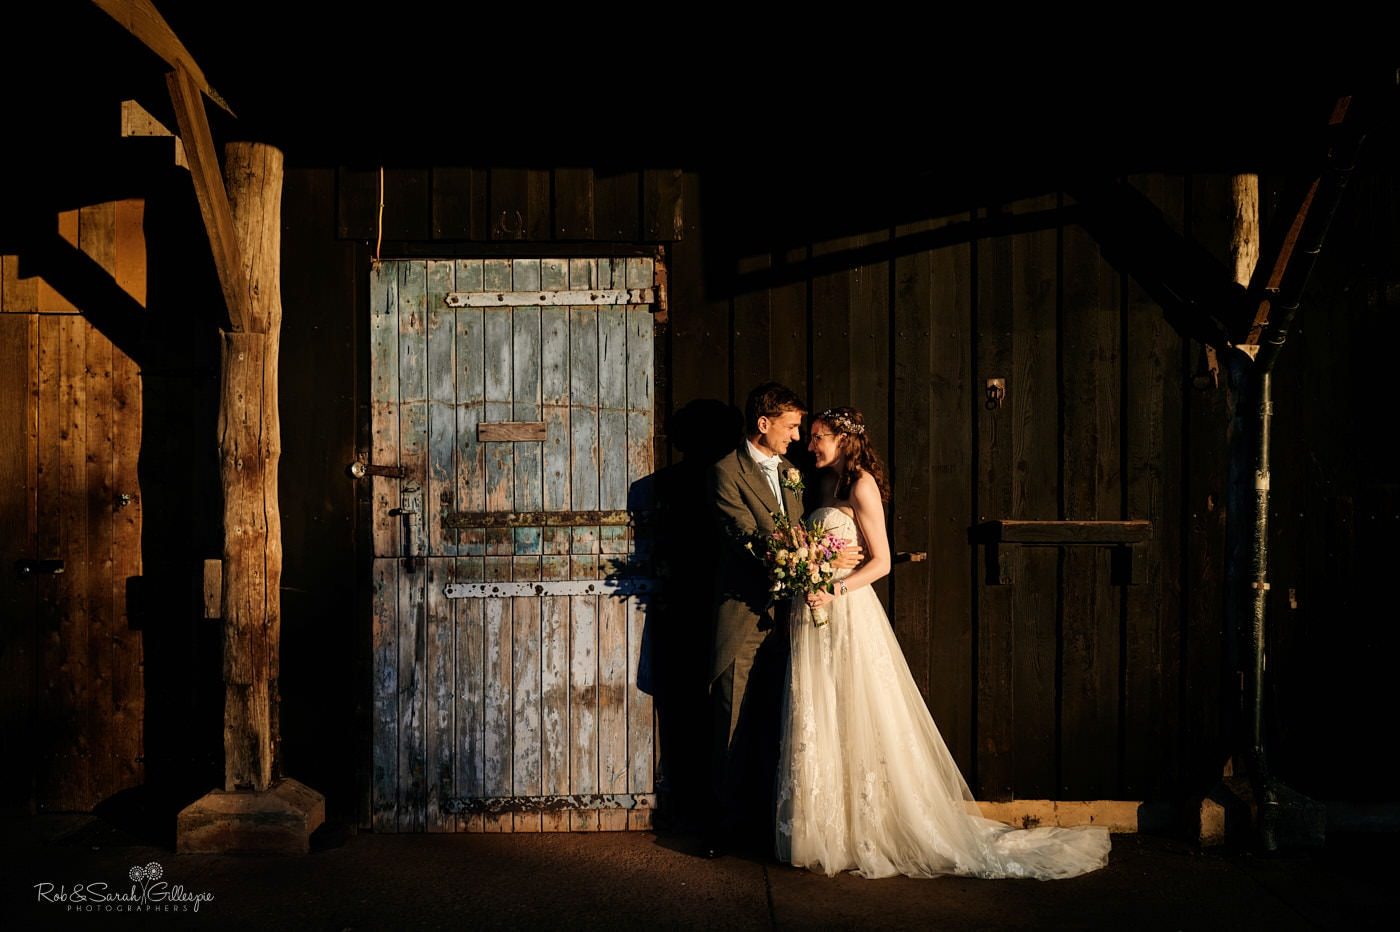 Bride and groom together outside barn at Avoncroft Museum wedding